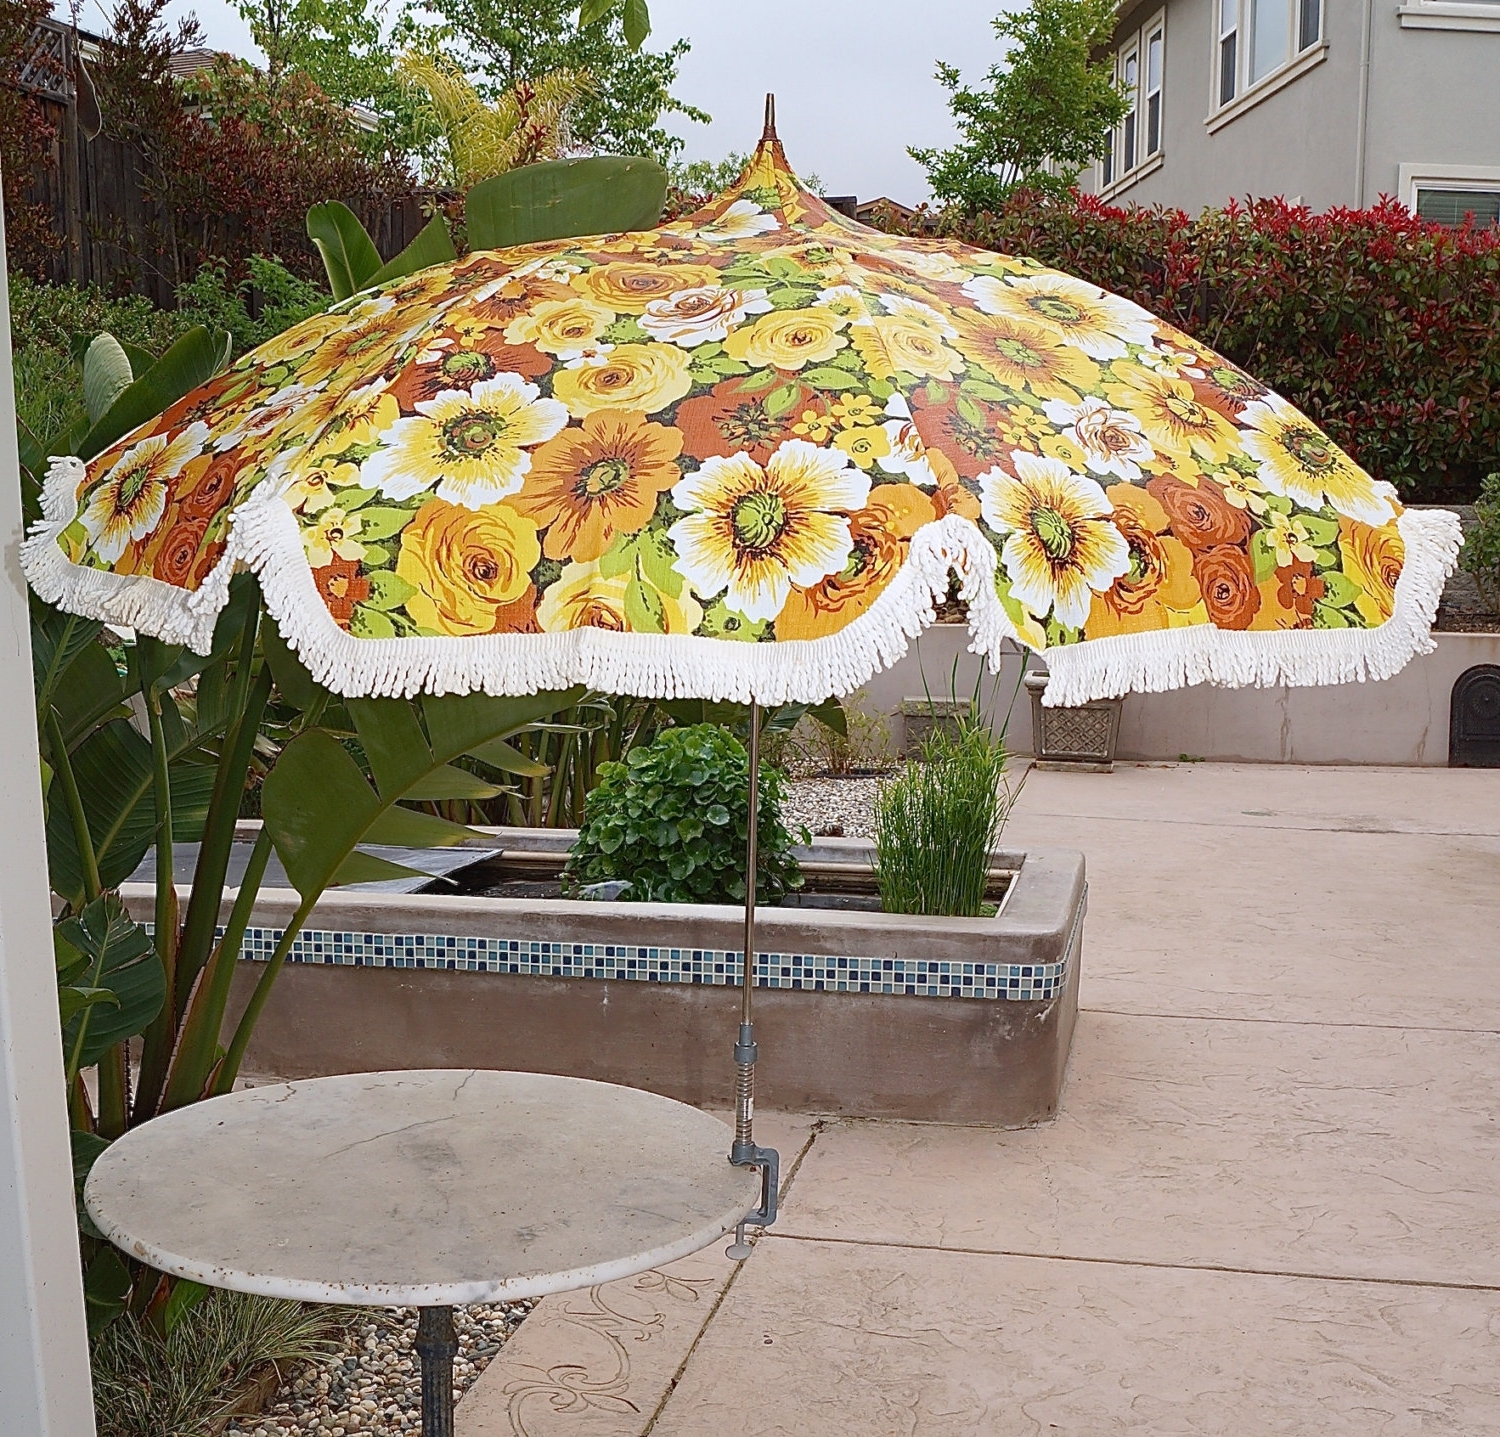 54 Vintage Patio Umbrella, 100 Retro Patio Umbrella Outdoor Patio Within Fashionable Vintage Patio Umbrellas For Sale (View 2 of 20)